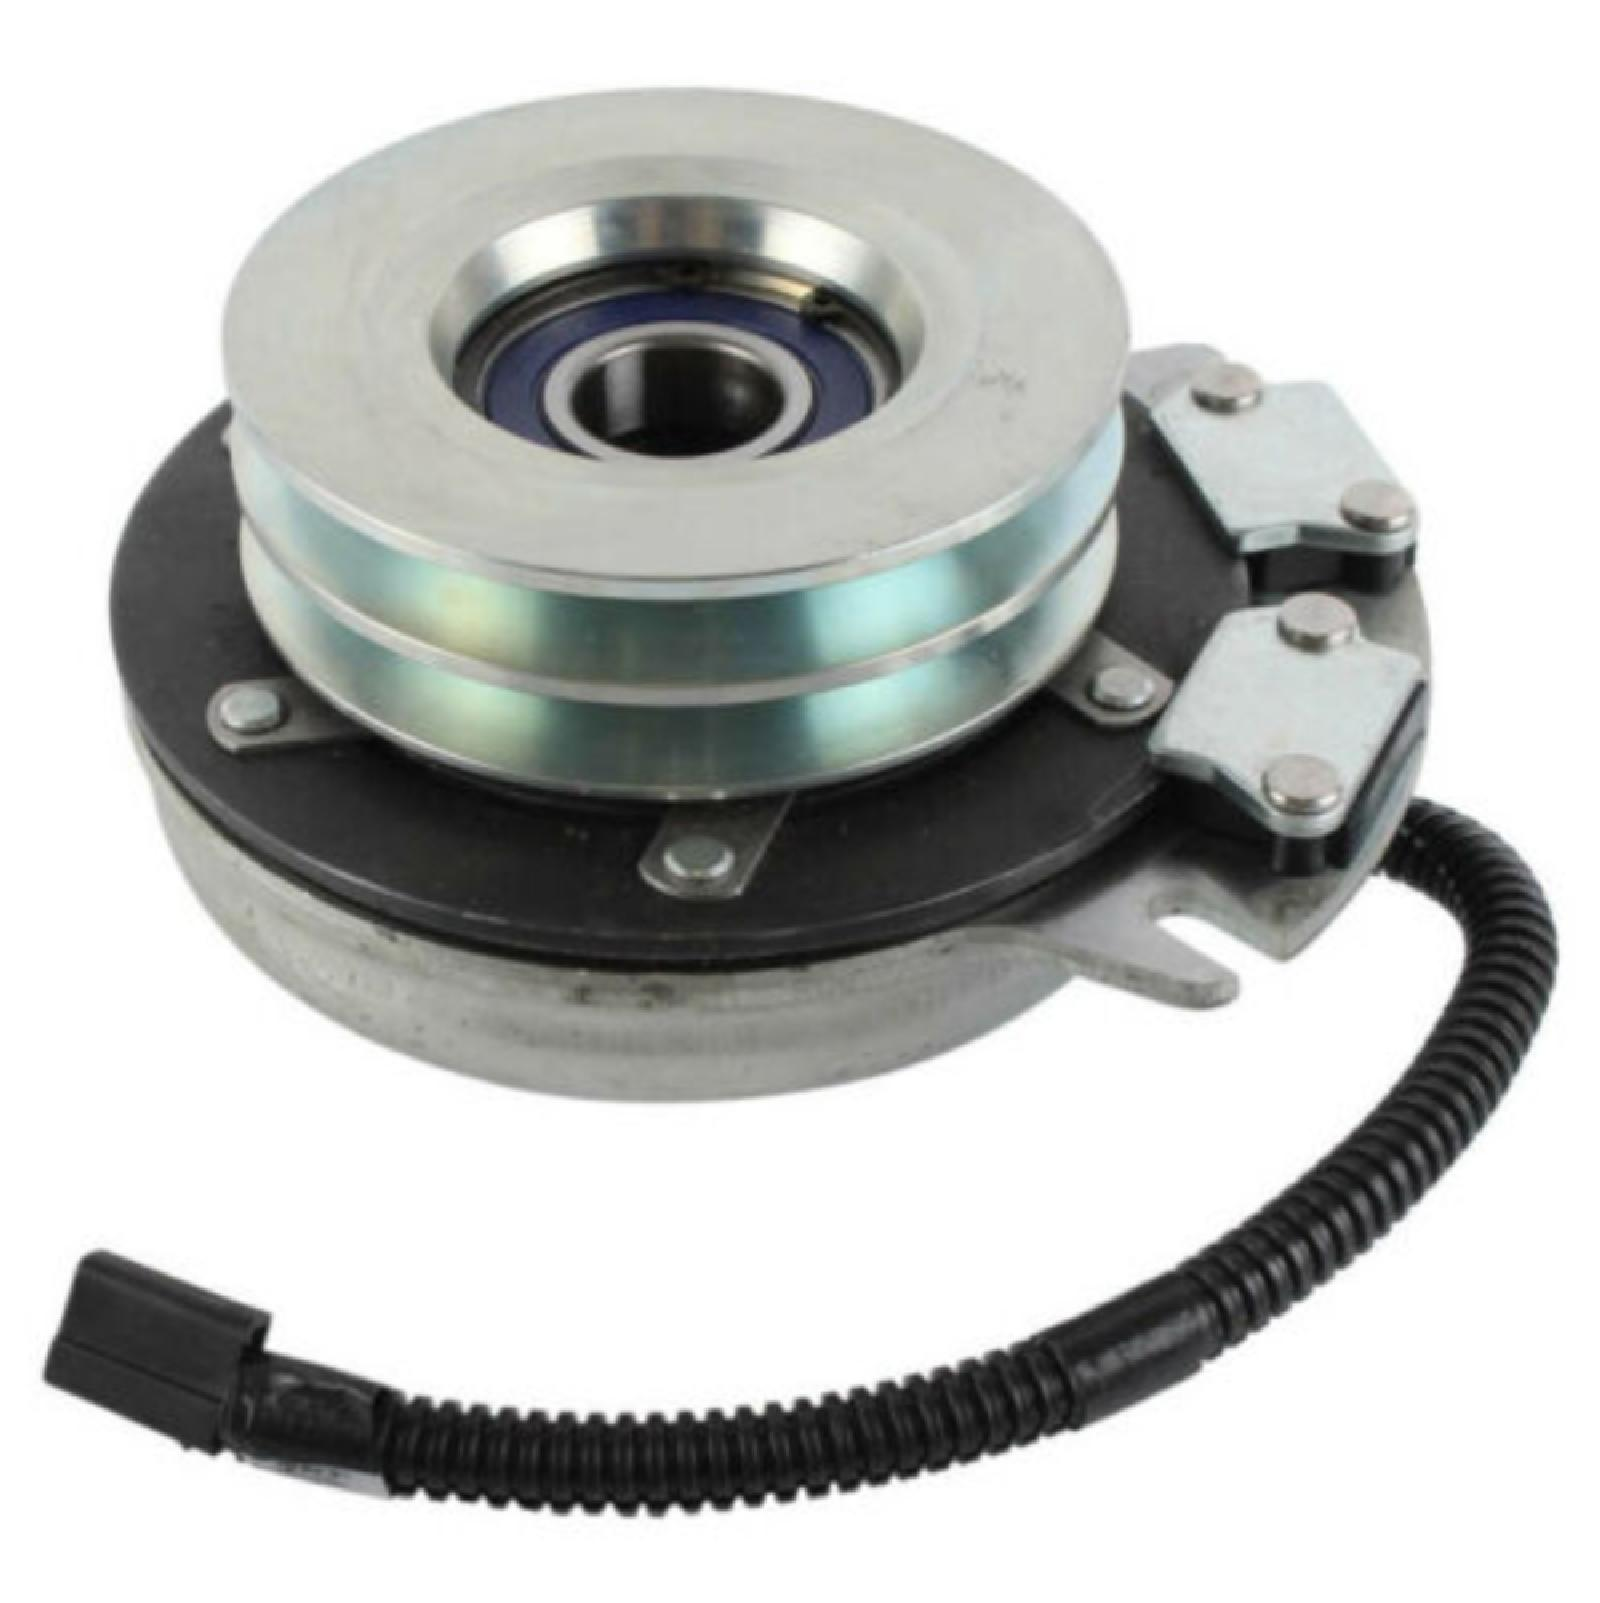 PTO clutch replaces Rotary 11074 Toro 105-1671 Warner 5218-33